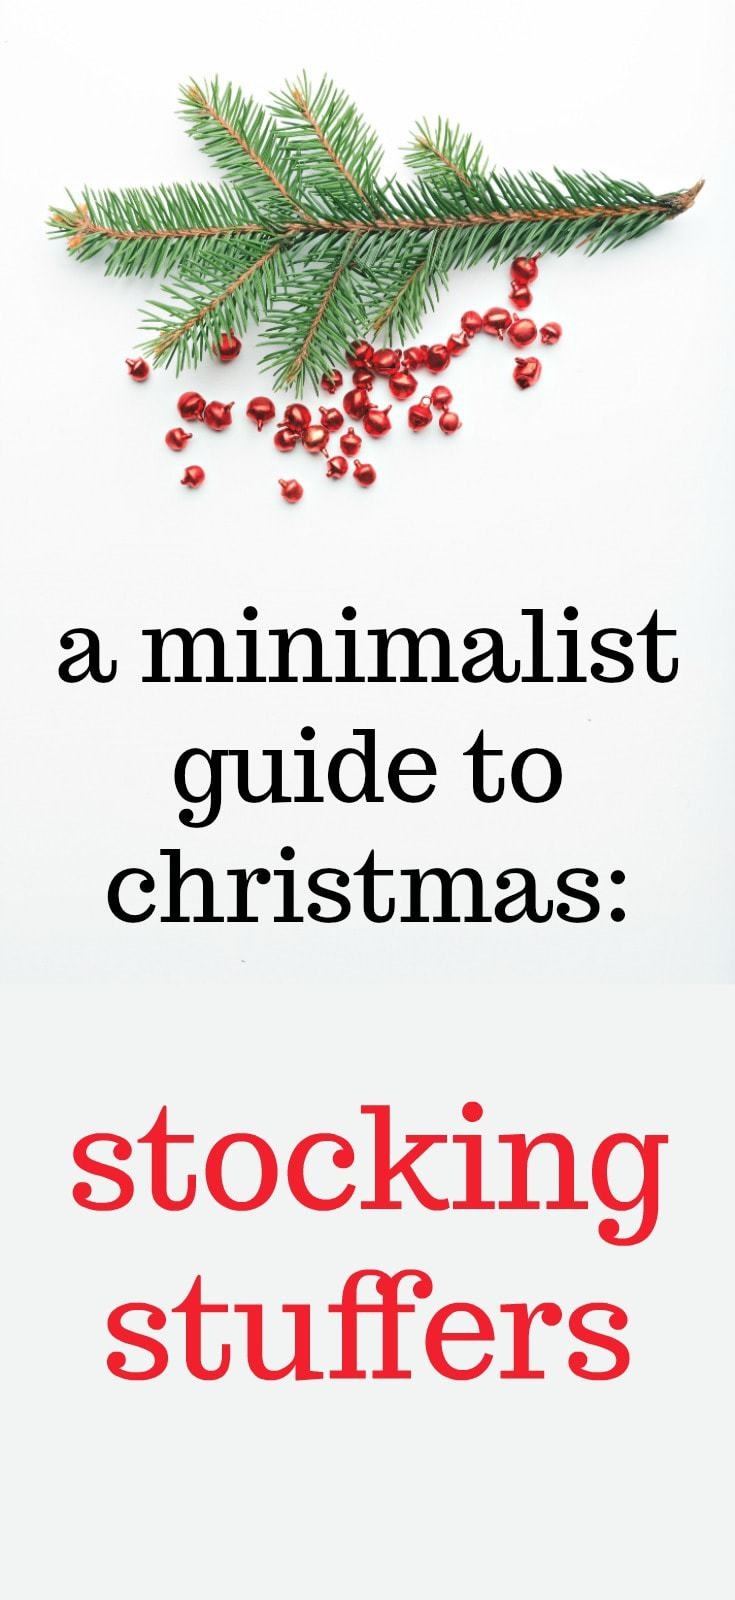 a minimalist guide to christmas - stocking stuffers